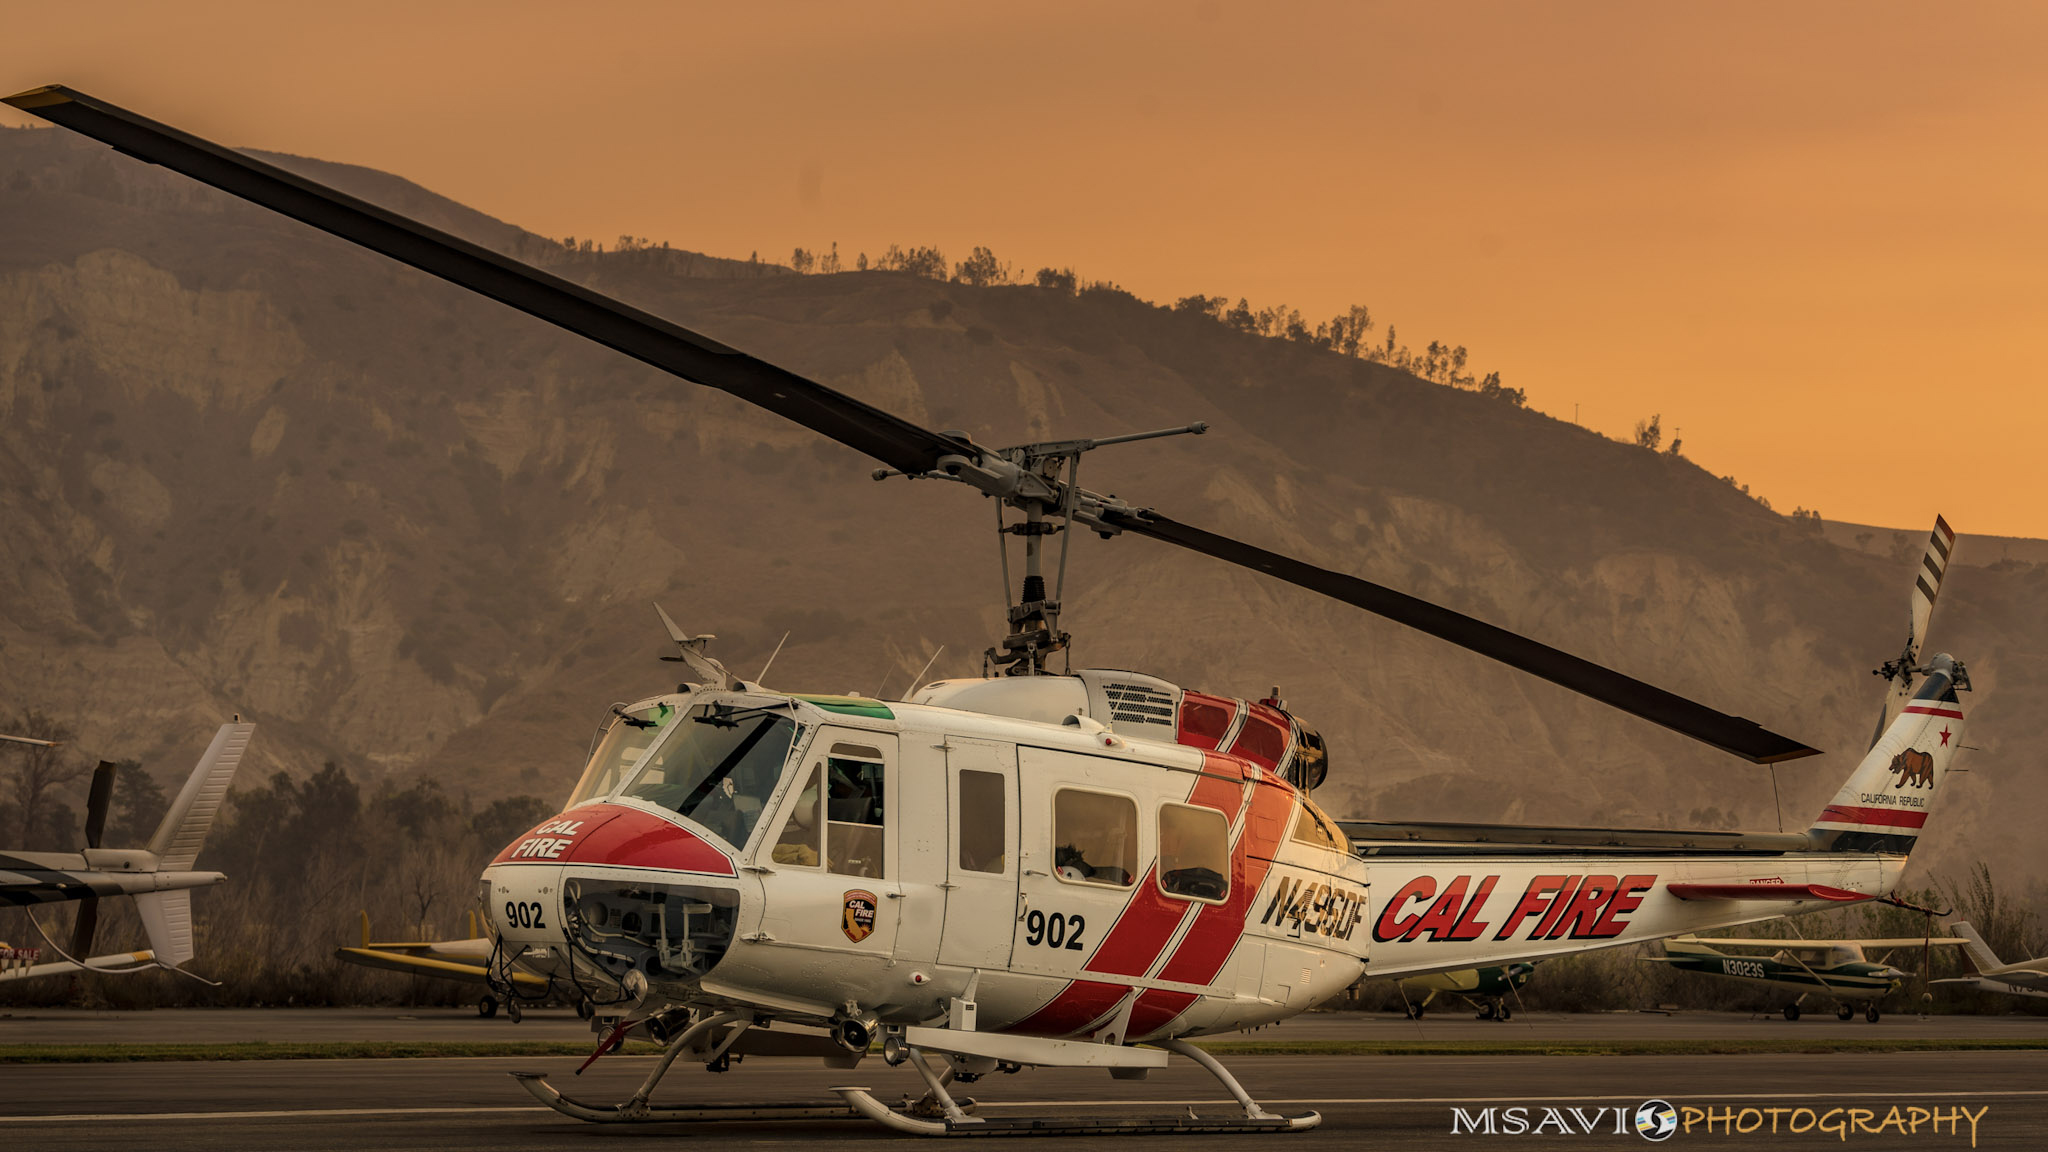 Smoke descends near a Cal Fire helicopter during firefighting operations based at California's Santa Paula Airport. Photo by Mike Salas, MSAVI Photography and Focal Flight.